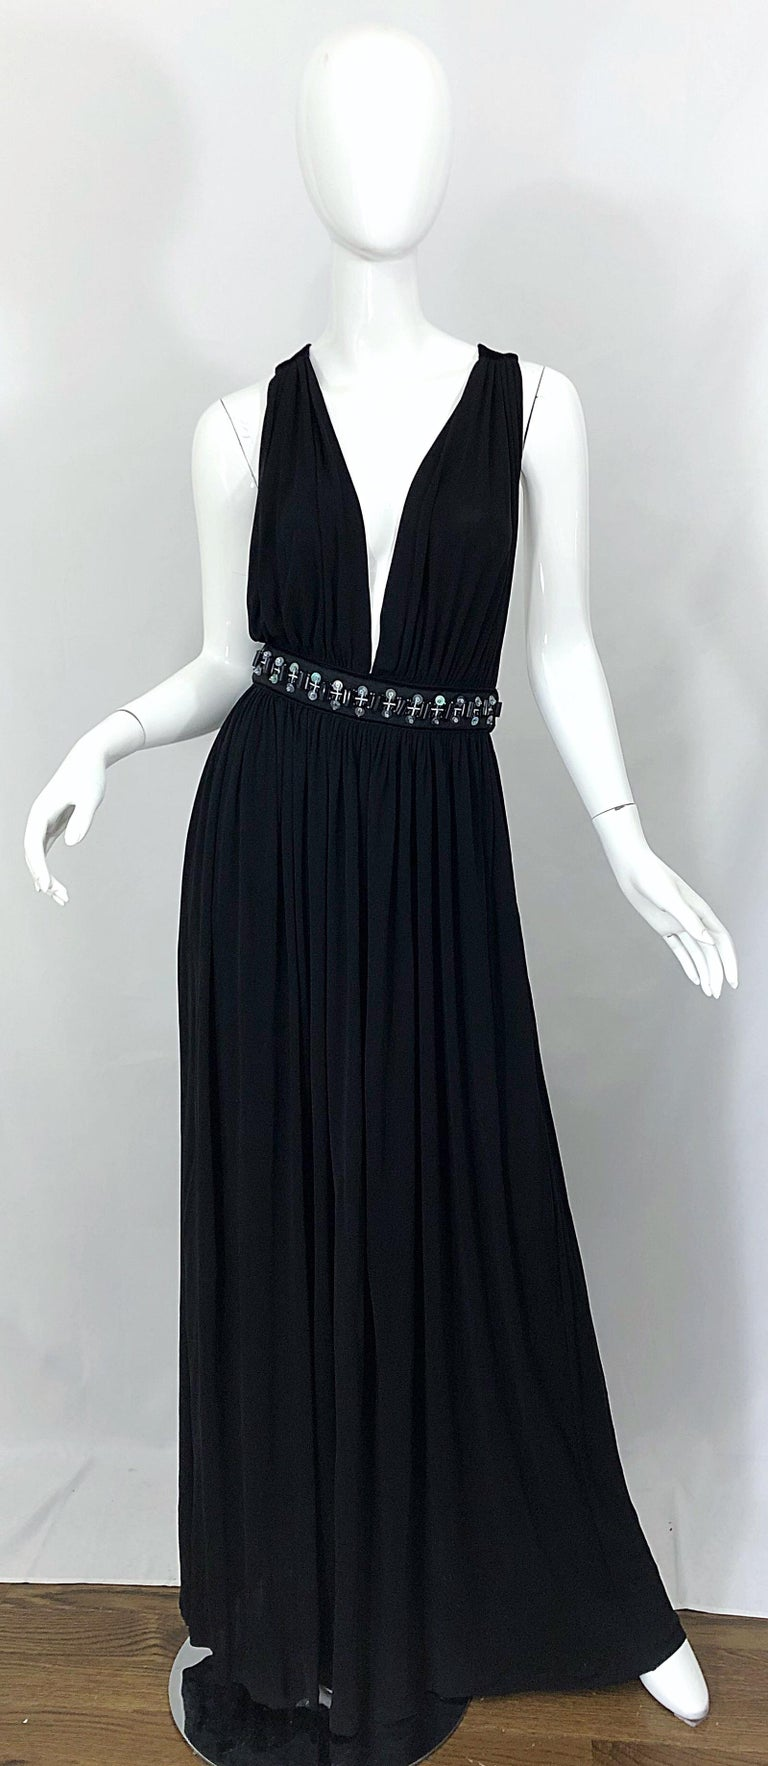 1990s Dolce & Gabbana D&G Black Plunging Sexy Beaded Sleeveless Vintage 90s Gown In Excellent Condition For Sale In Chicago, IL